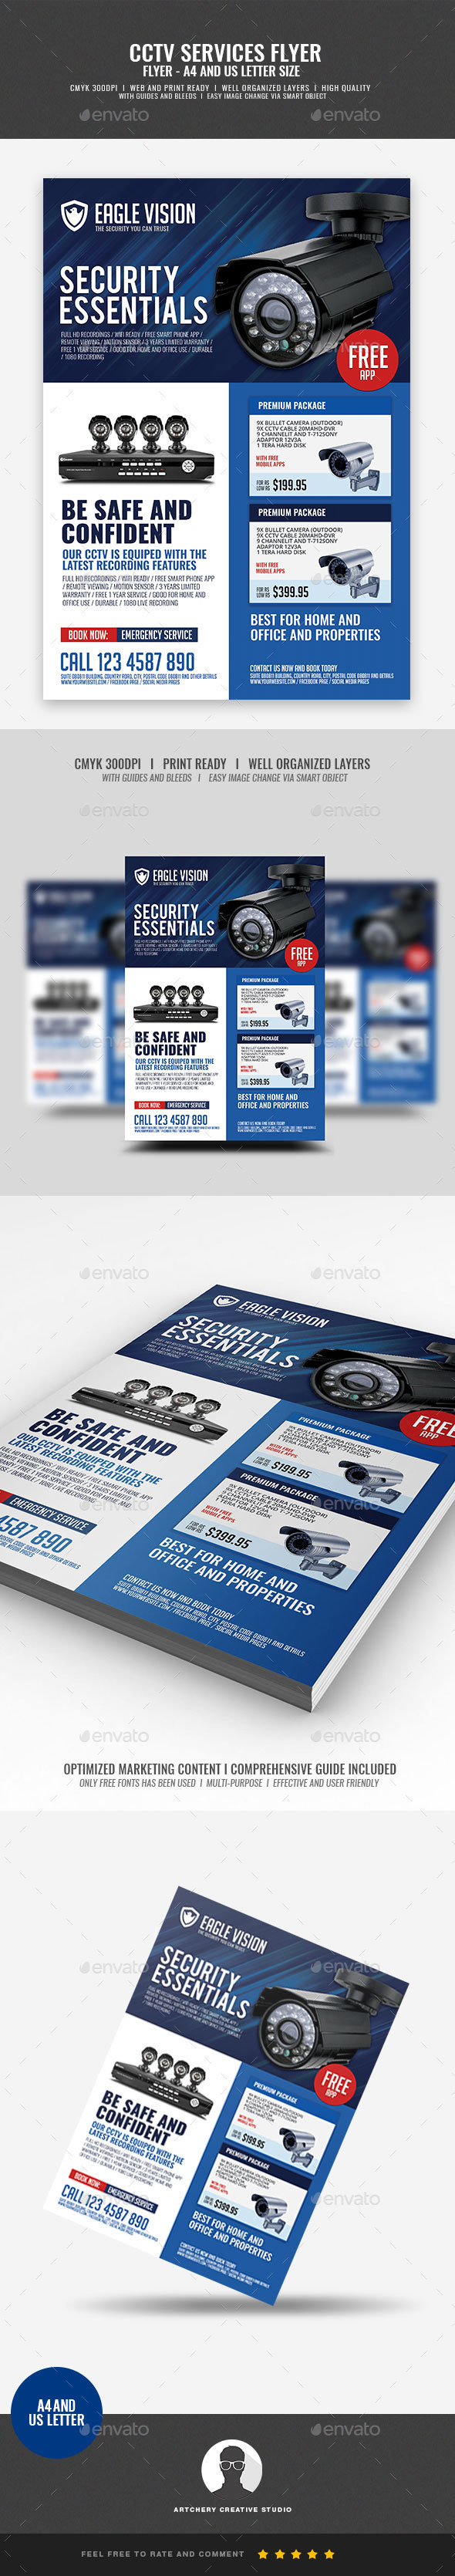 GraphicRiver CCTV Camera Center 20970548